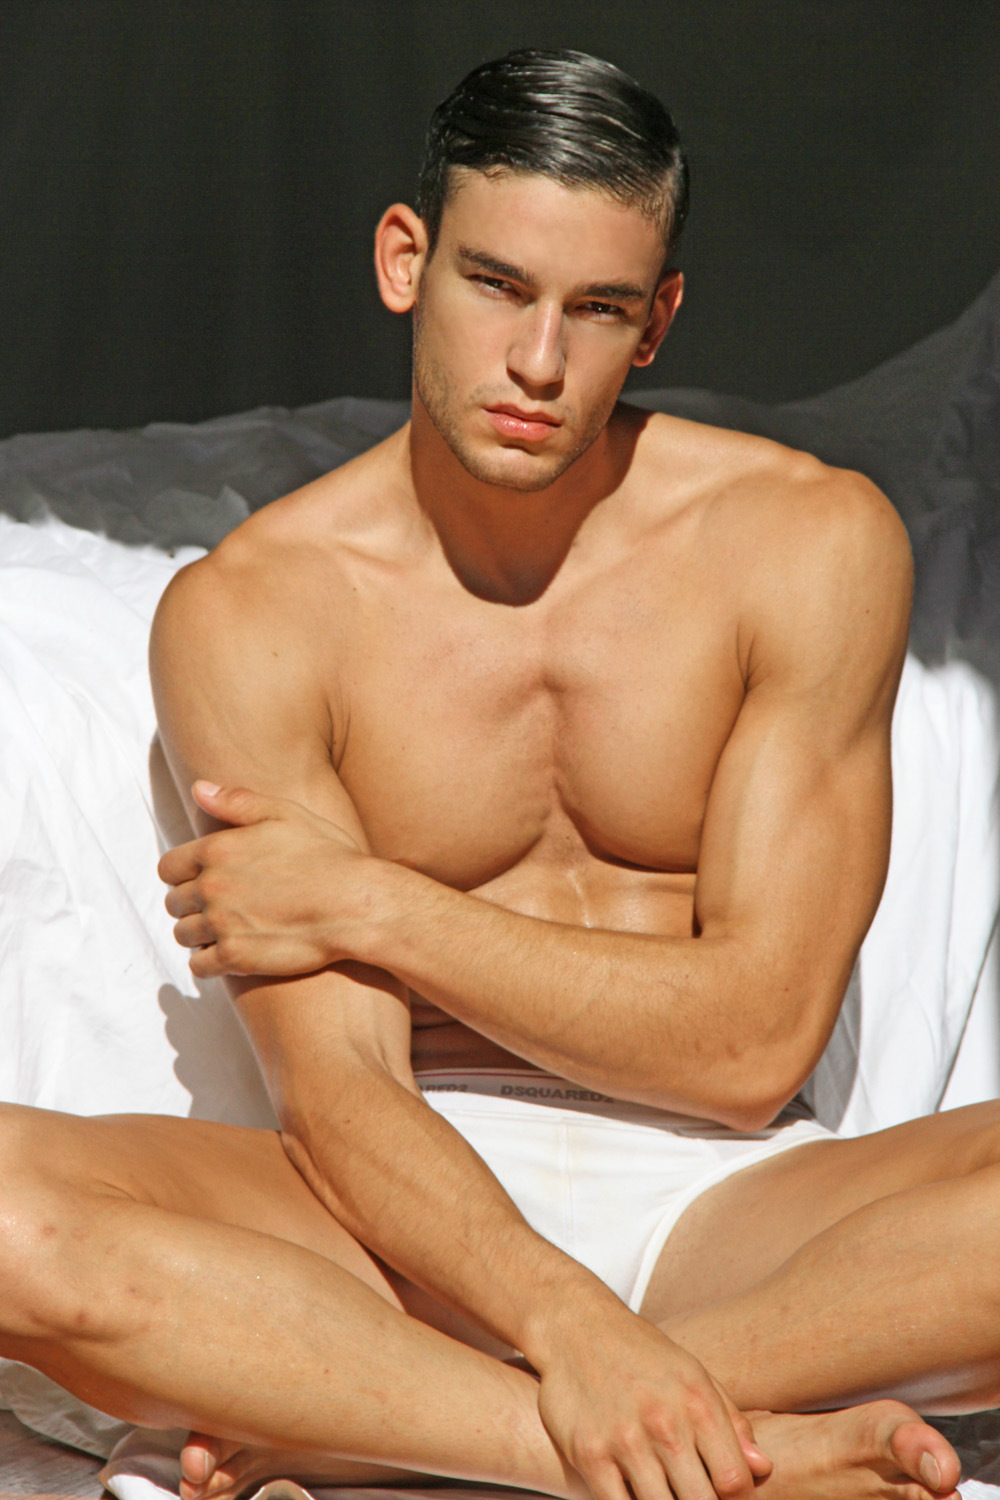 pace single gay men Single gay men in milton, fl matchcom is the best place to search the sunshine state for online singles start searching for florida singles looking for love just like you.